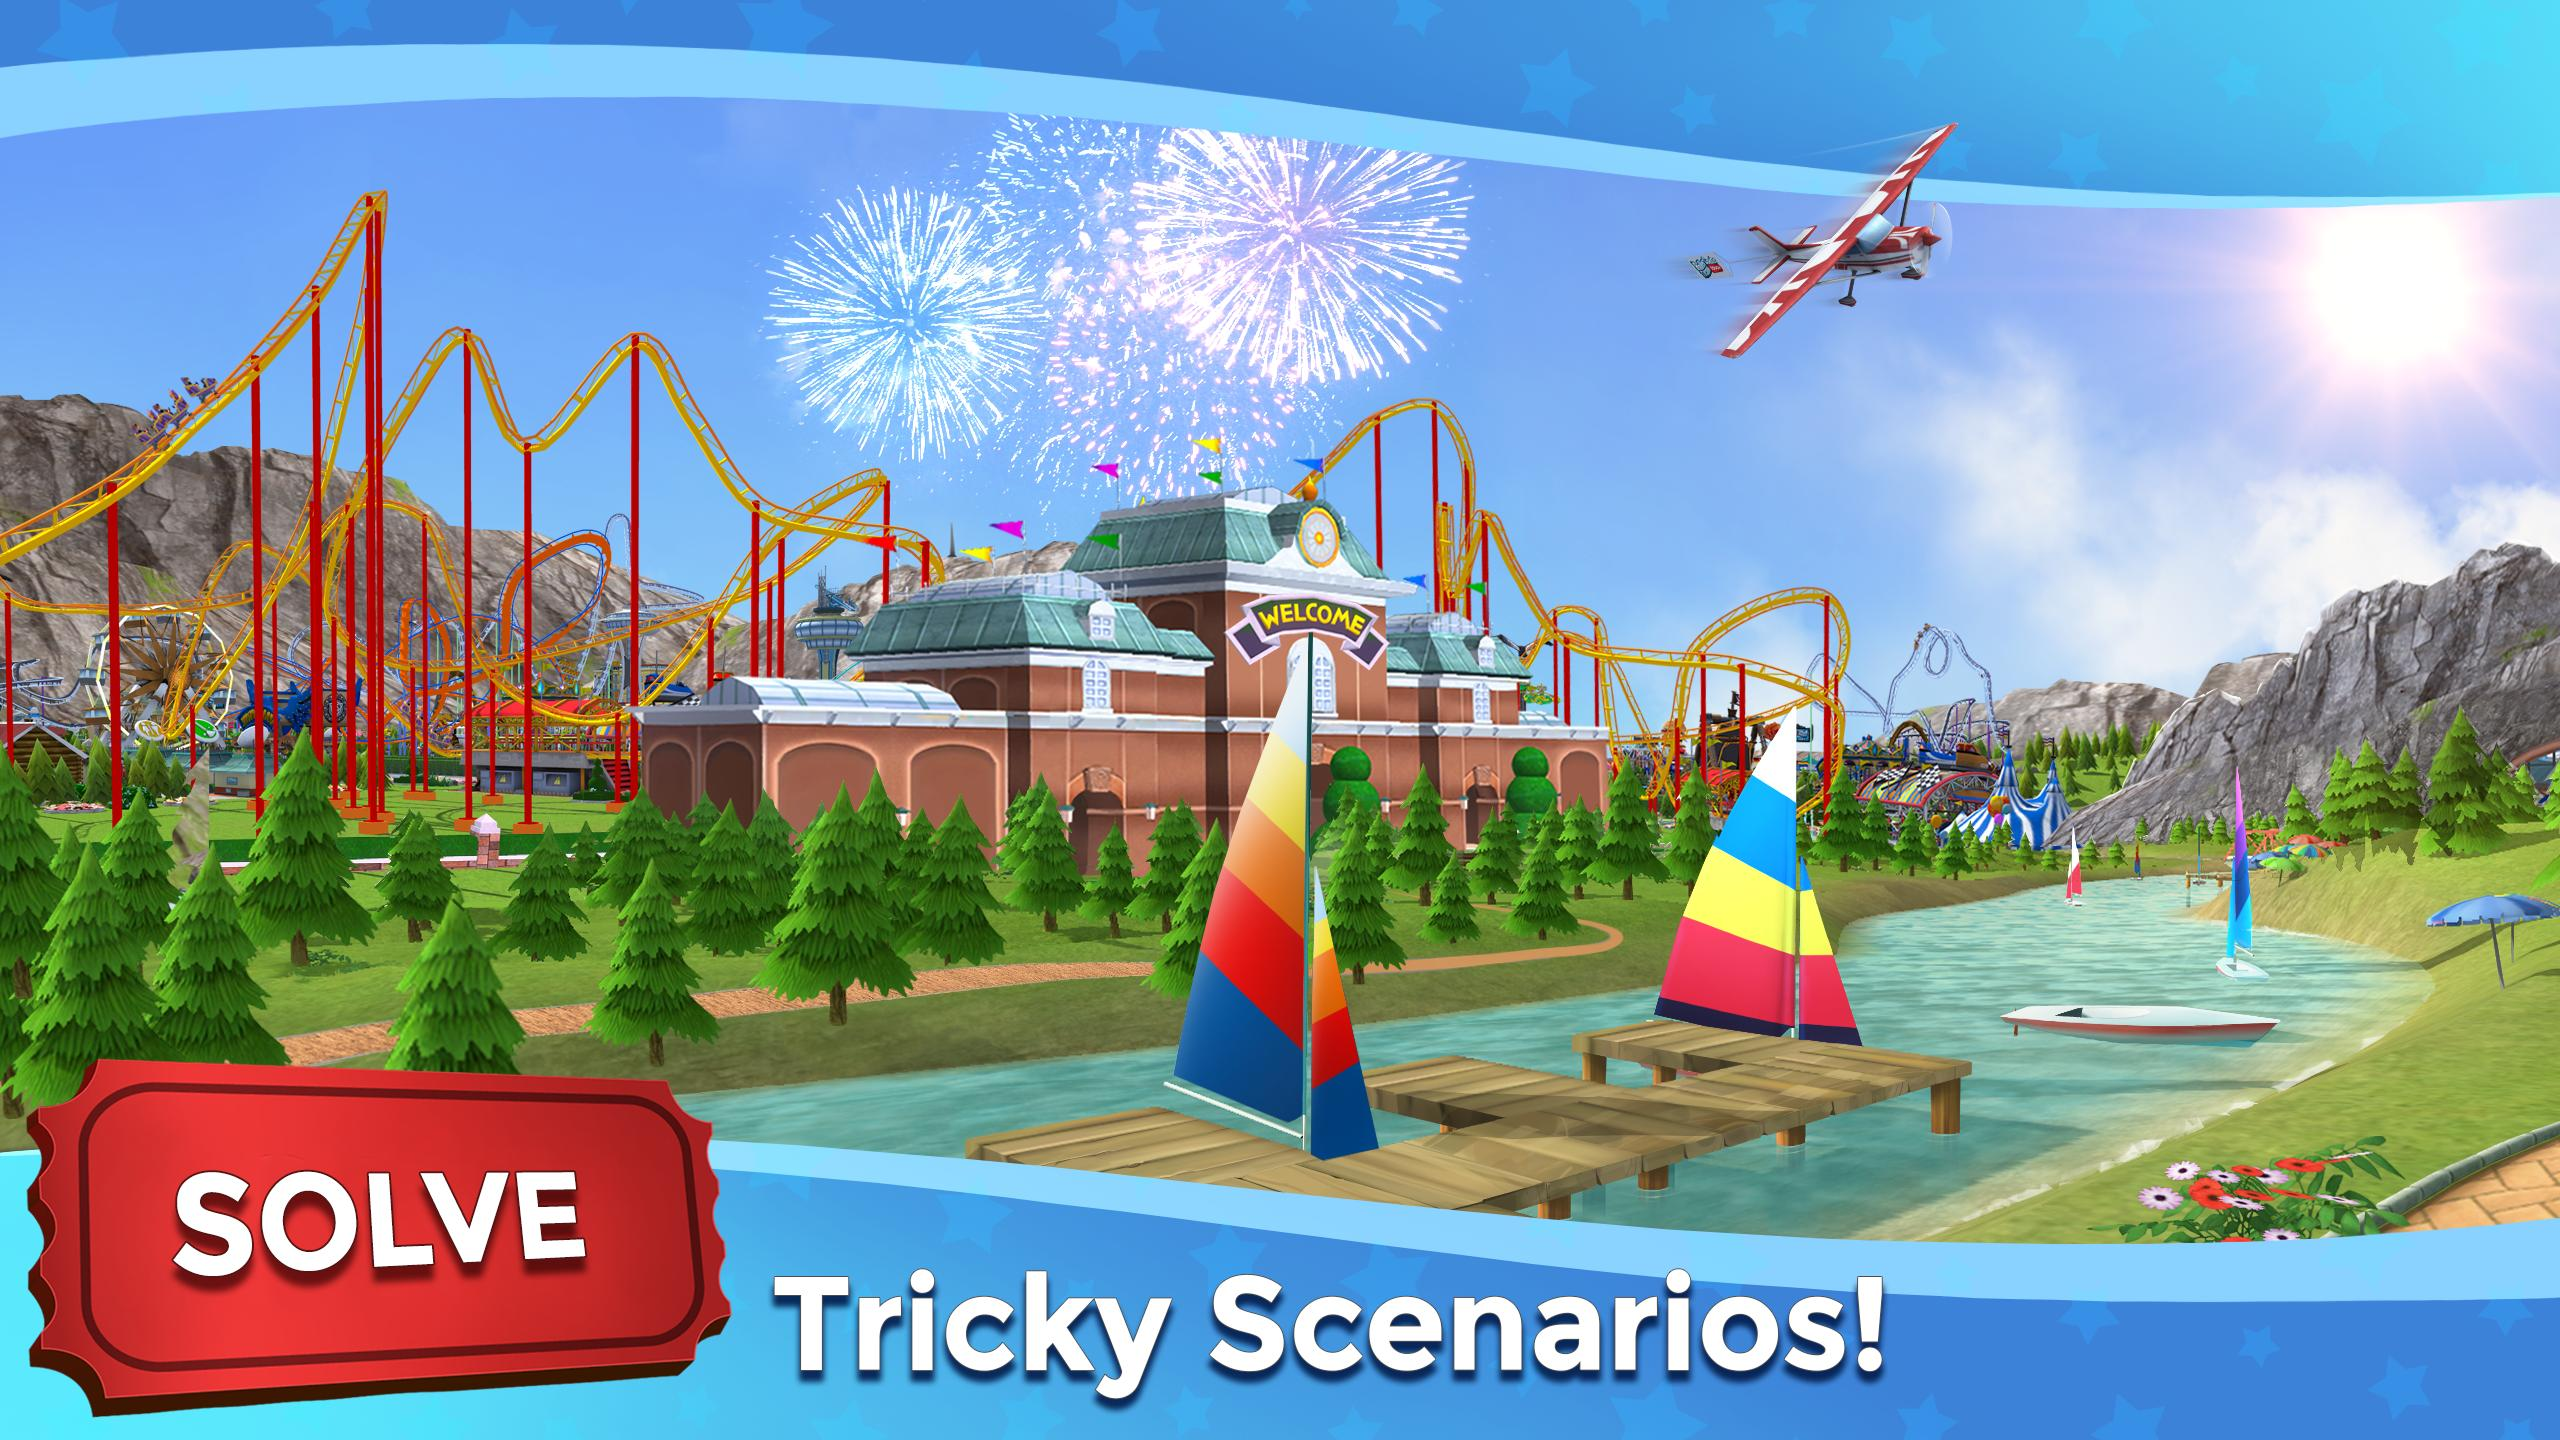 RollerCoaster Tycoon Touch - Build your Theme Park 3.5.0 Screenshot 22